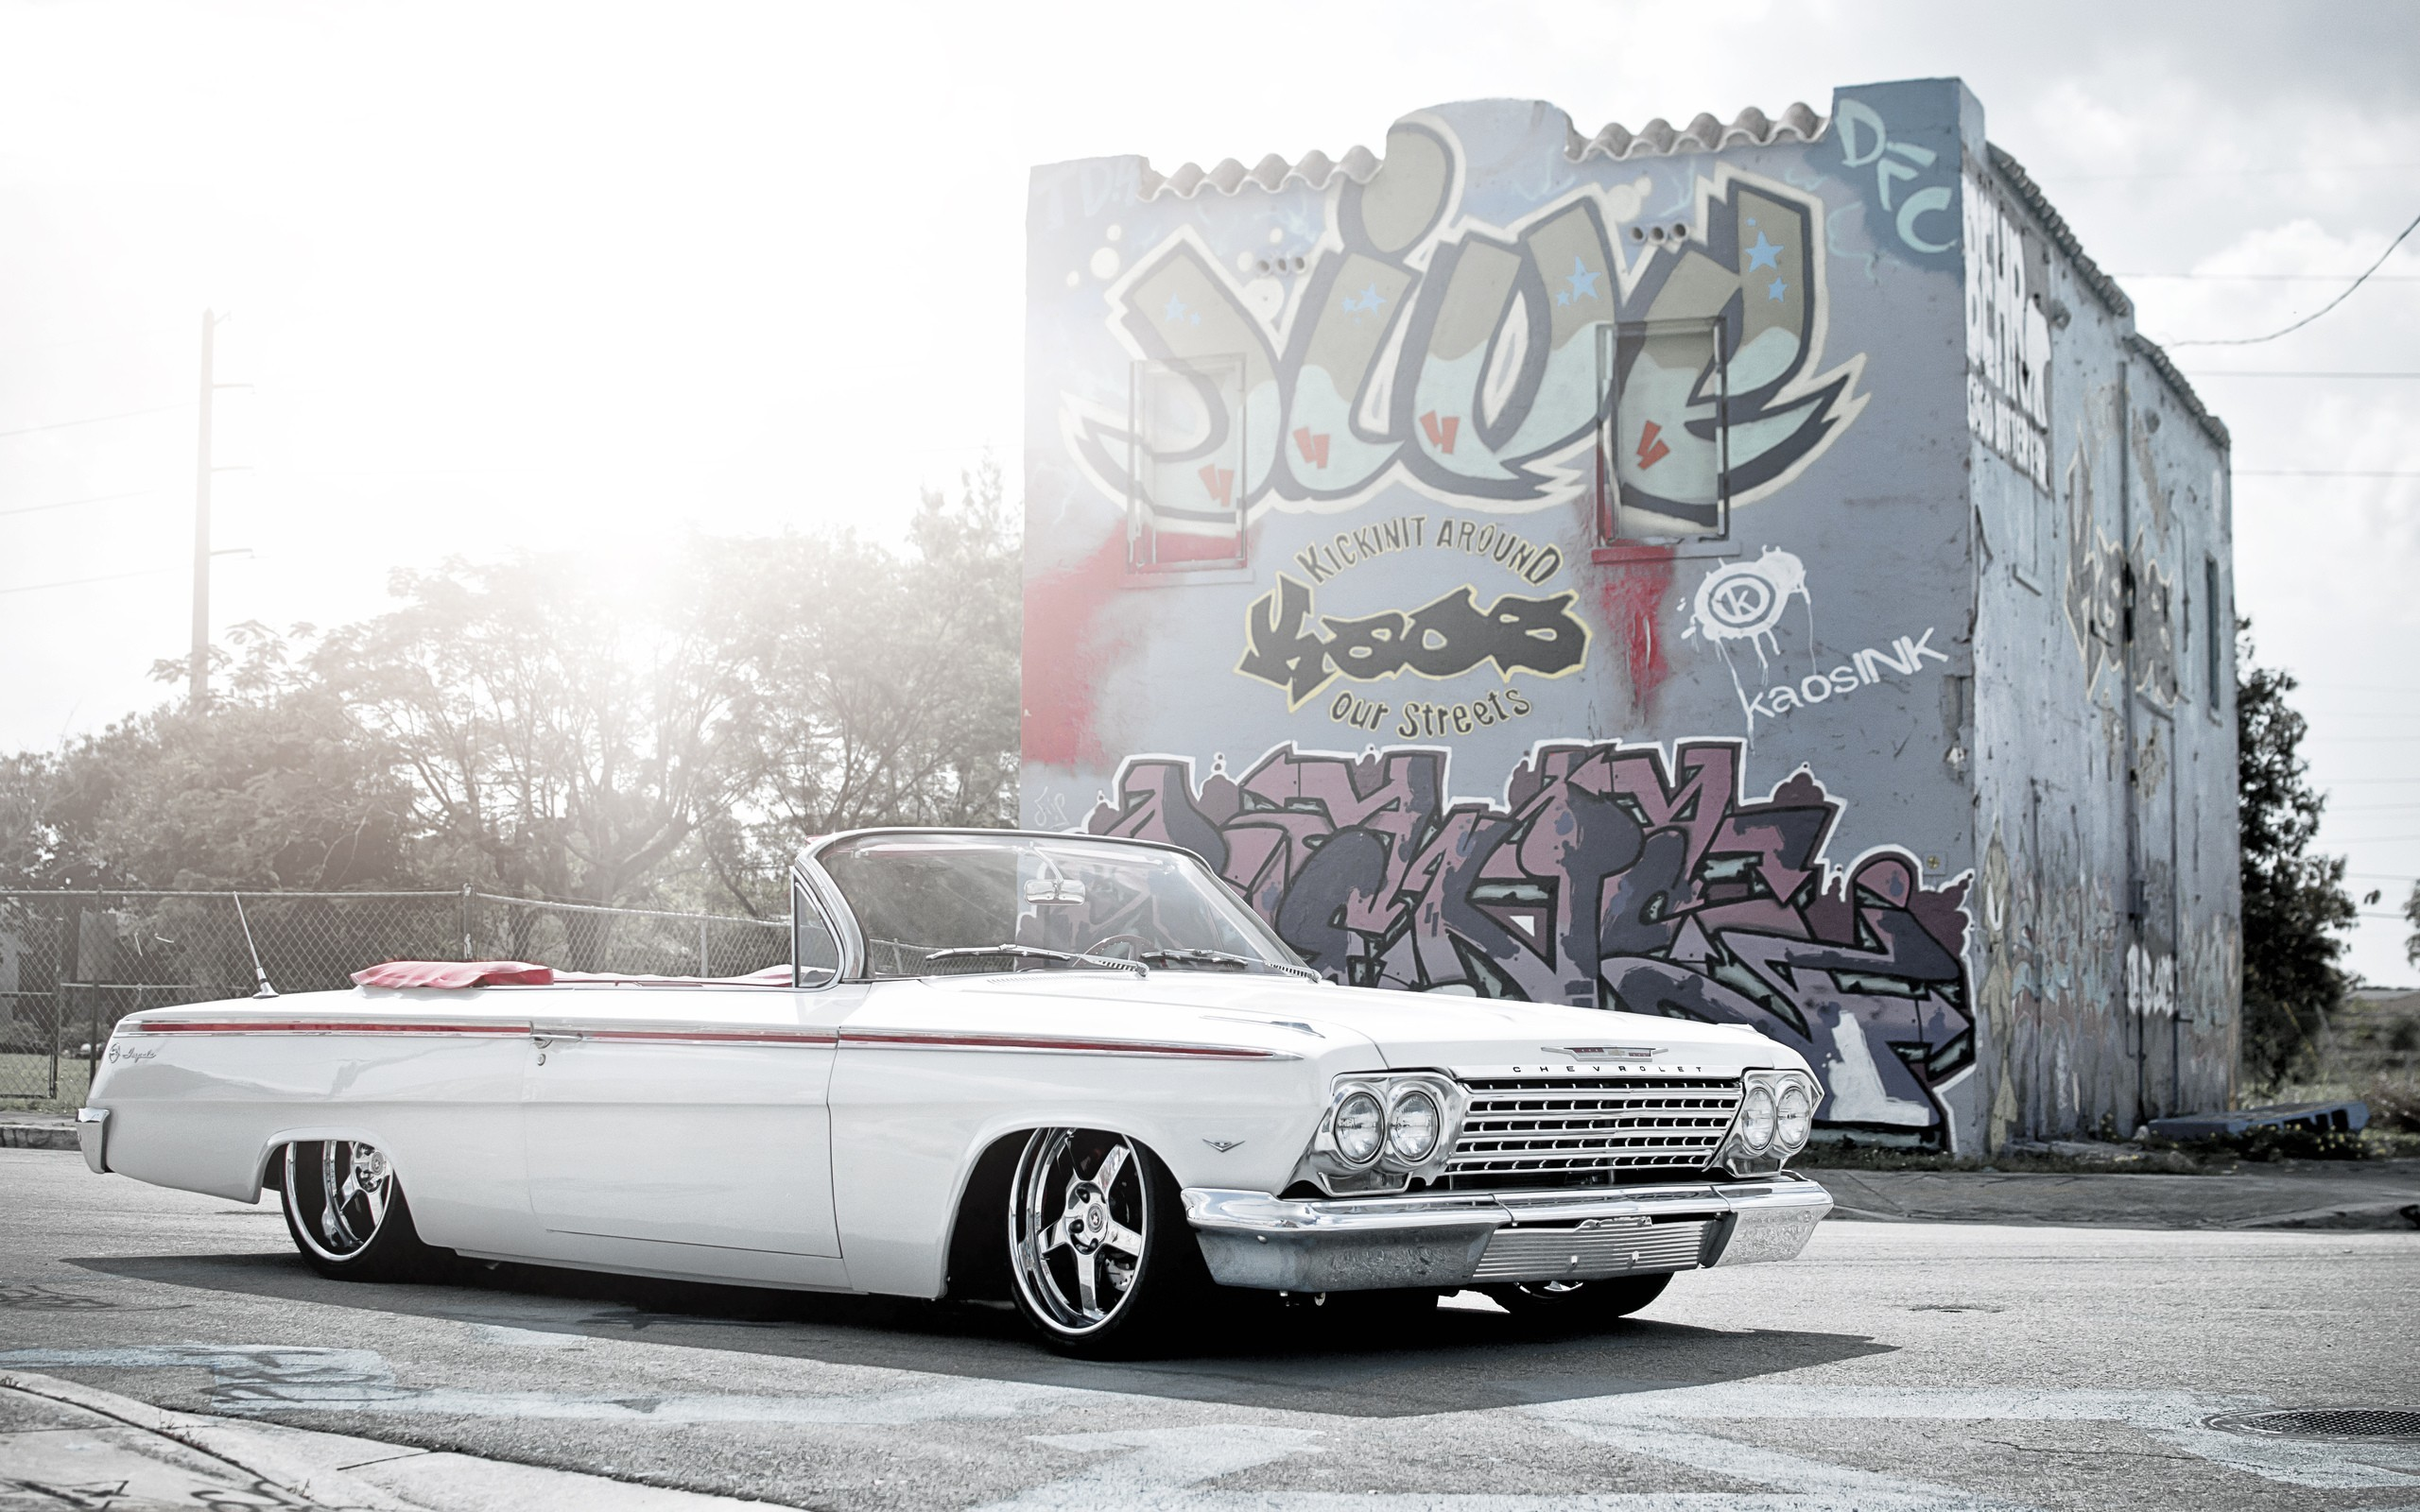 2560x1600 Lowrider HD Wallpaper | Background Image |  | ID:237516 - Wallpaper  Abyss